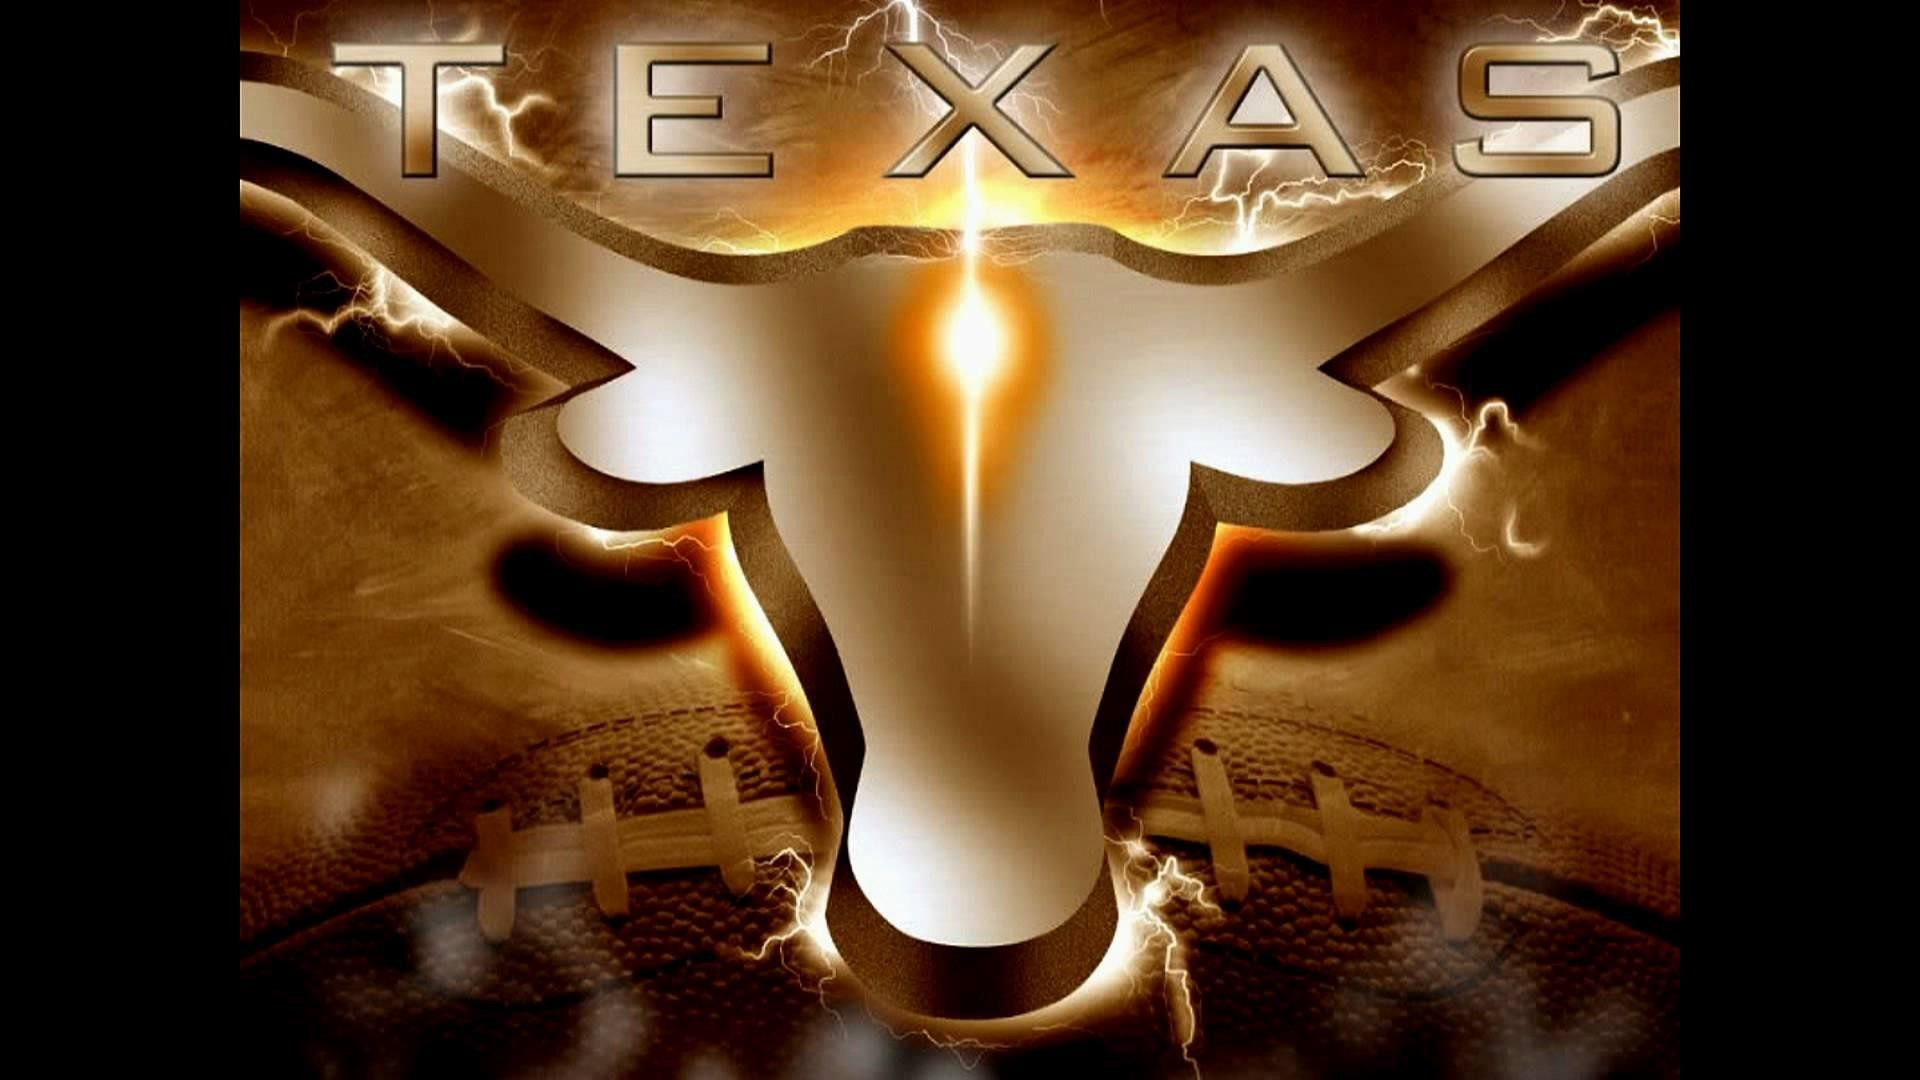 wallpaper.wiki-Texas-Longhorns-Football-Pictures-PIC-WPD002550